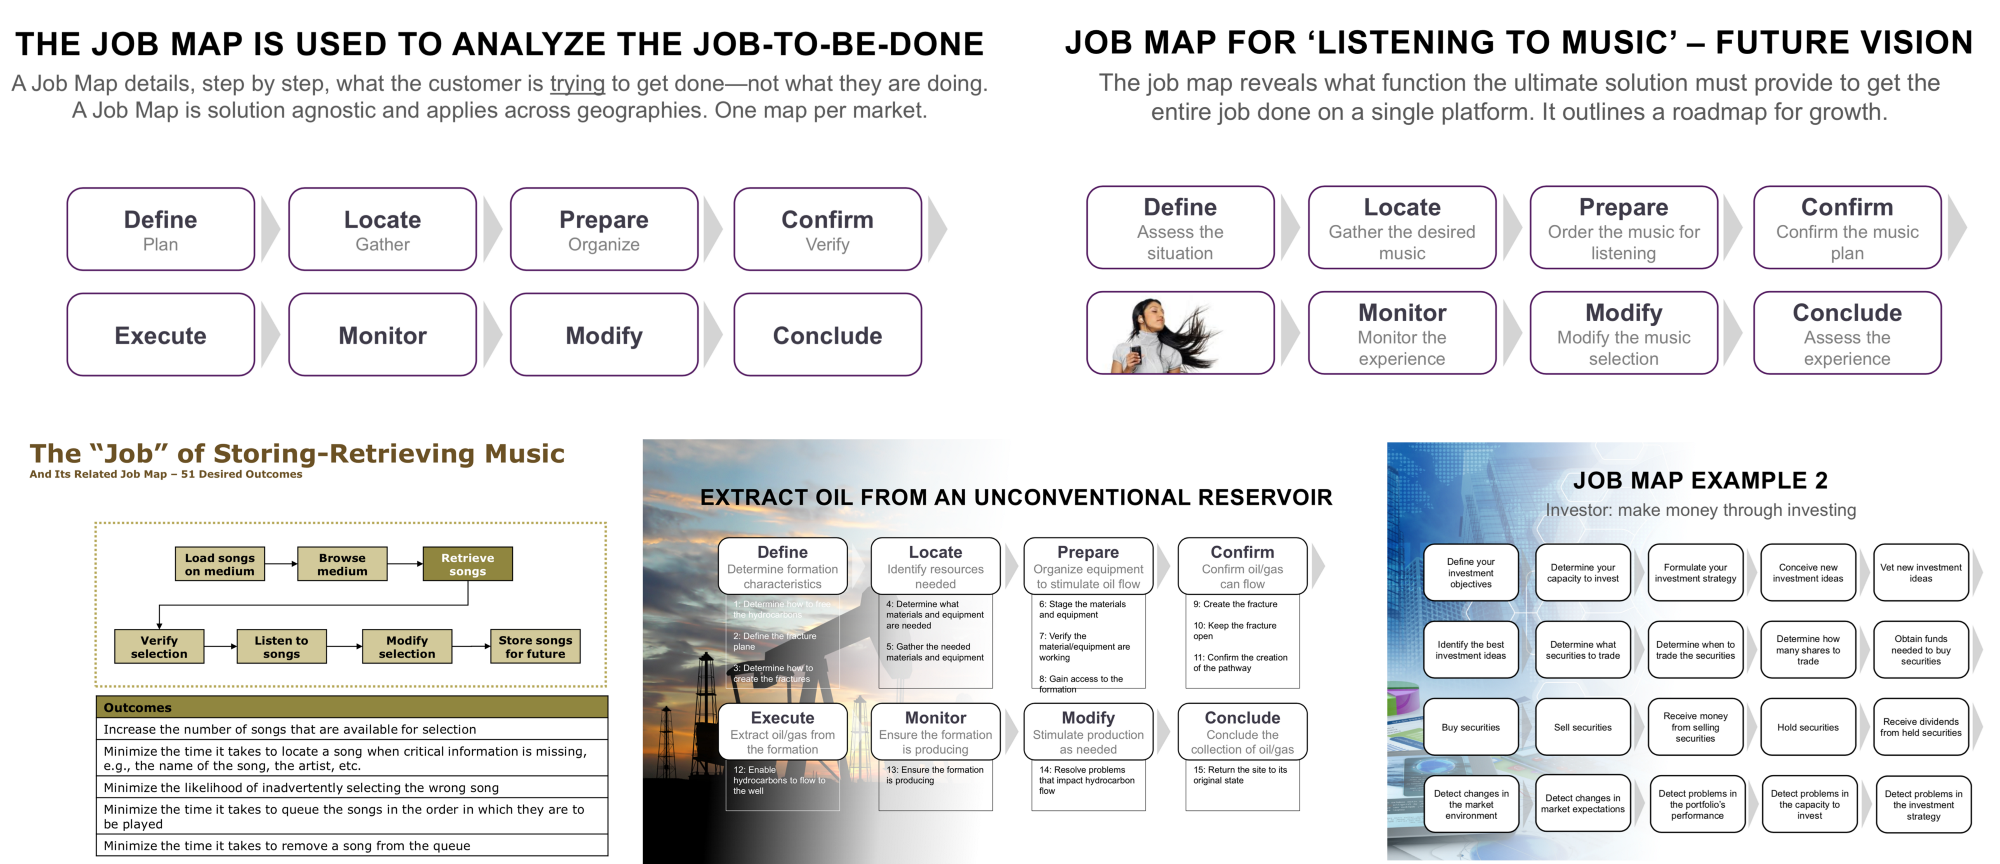 Know The Two Very Different Interpretations Of Jobs To Be Done